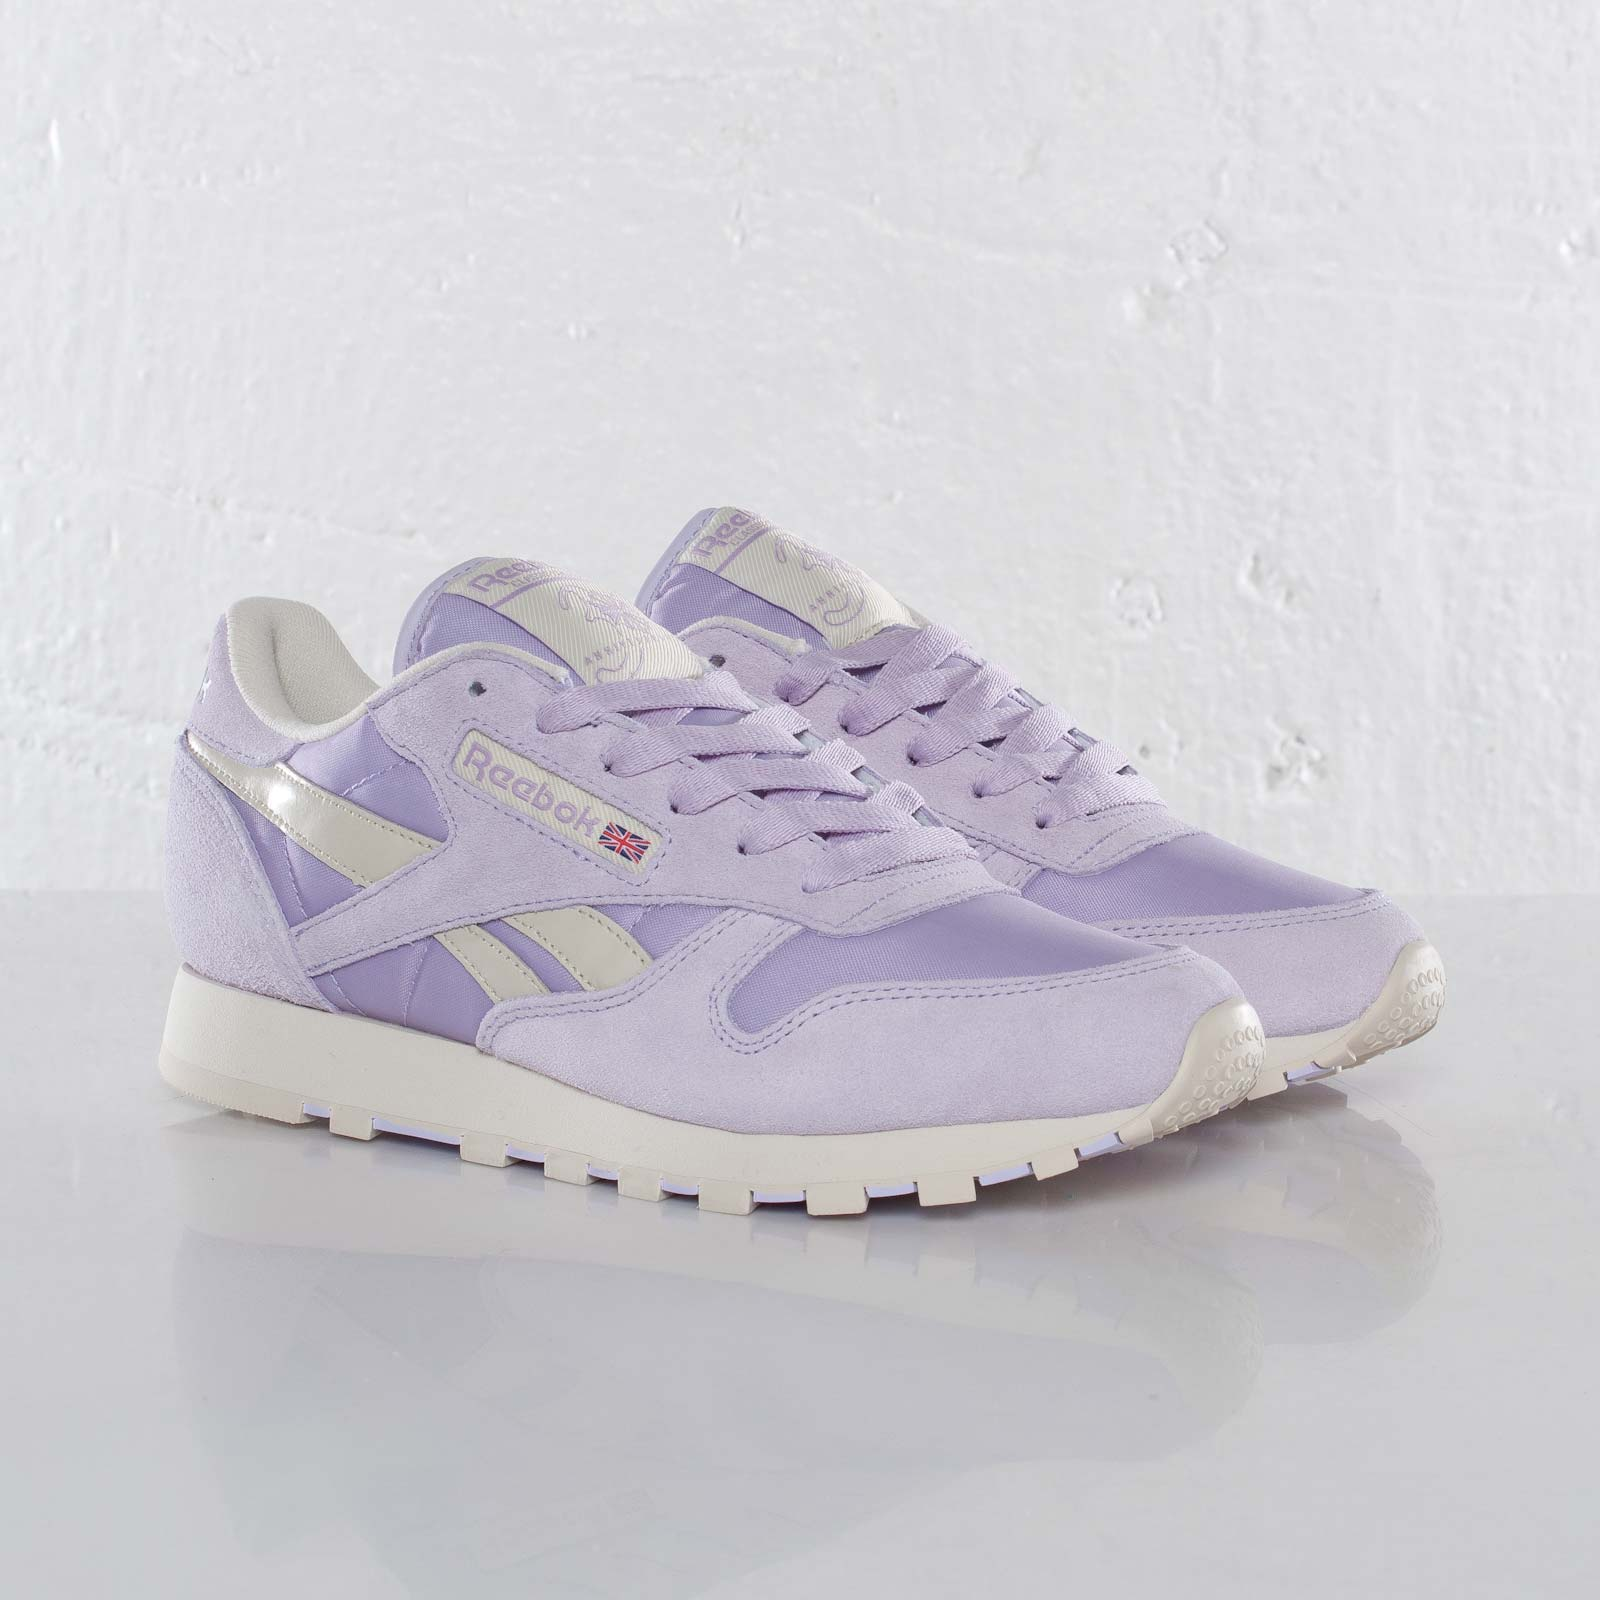 Reebok Classic Leather Pastel - V45287 - Sneakersnstuff  2c32258b0